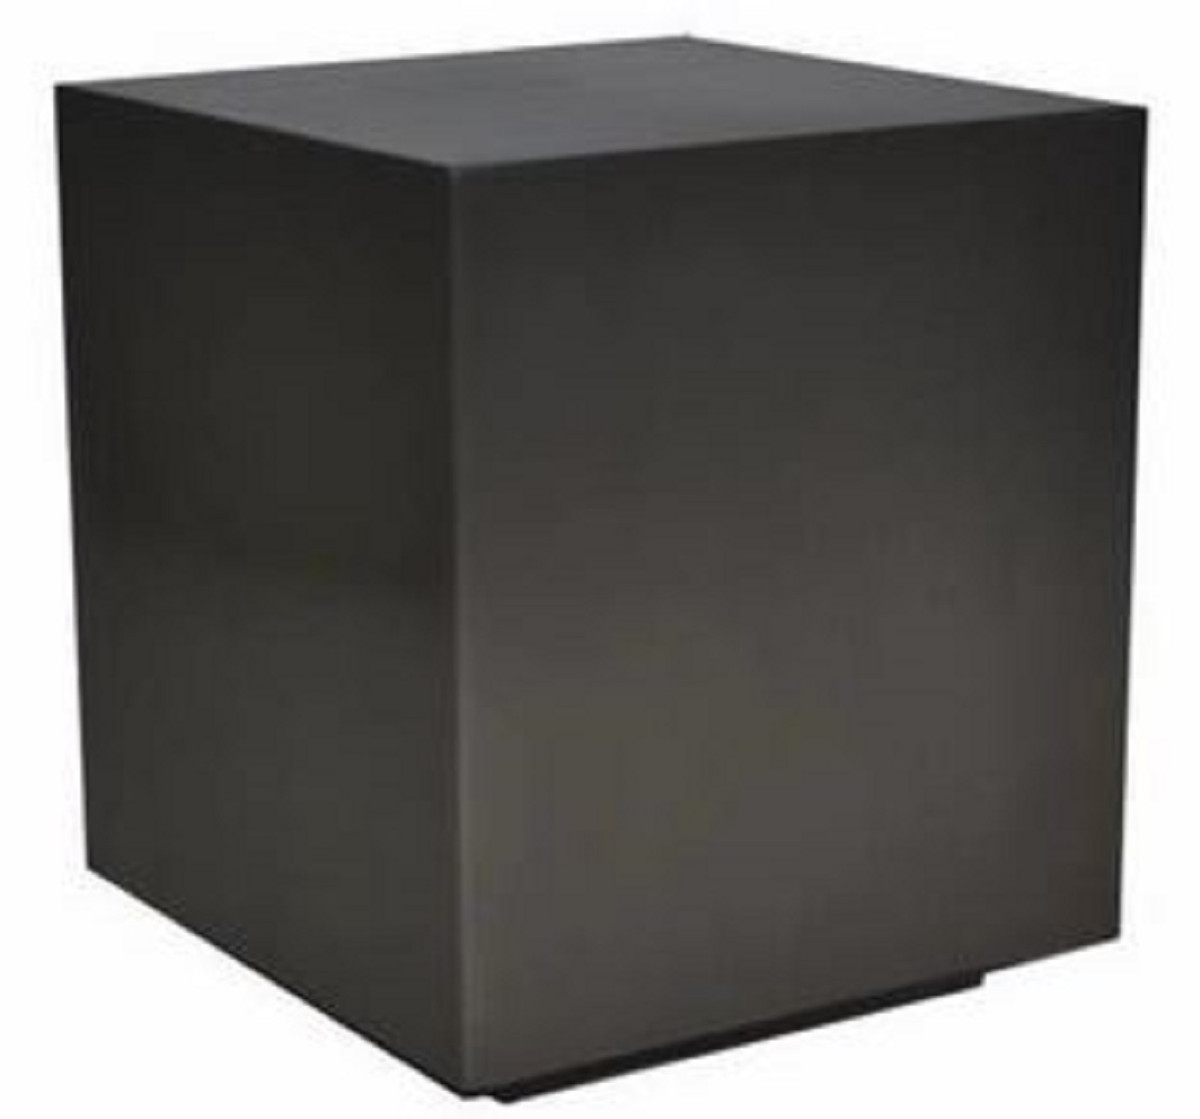 Marmortisch Xxl Luxury Side Tables Made Of High Quality Materials In Extravagant